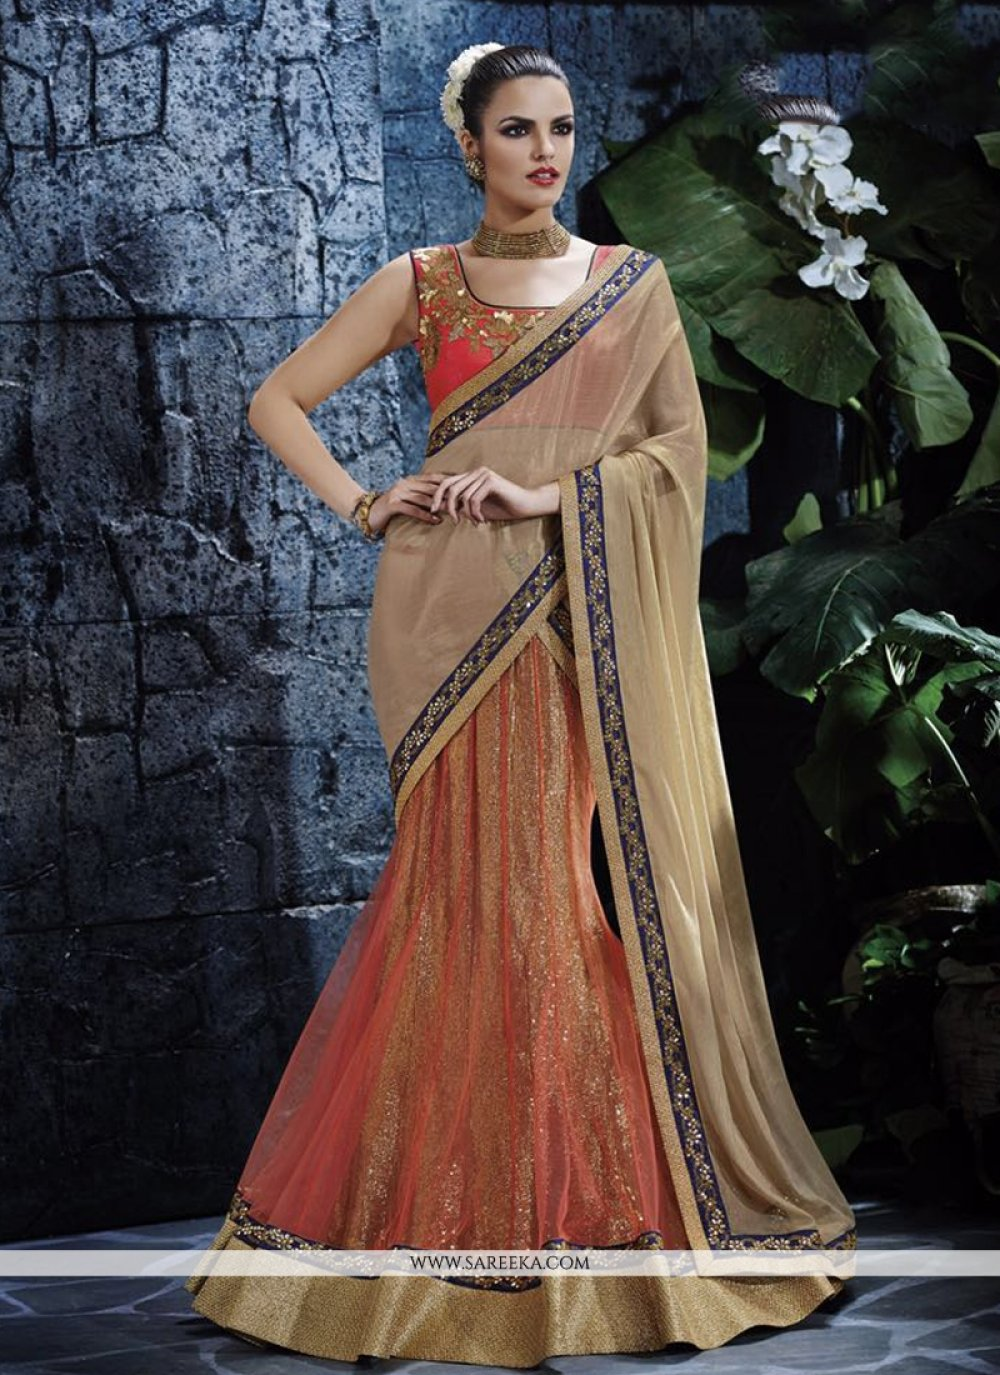 Faux Chiffon Orange Lehenga Saree